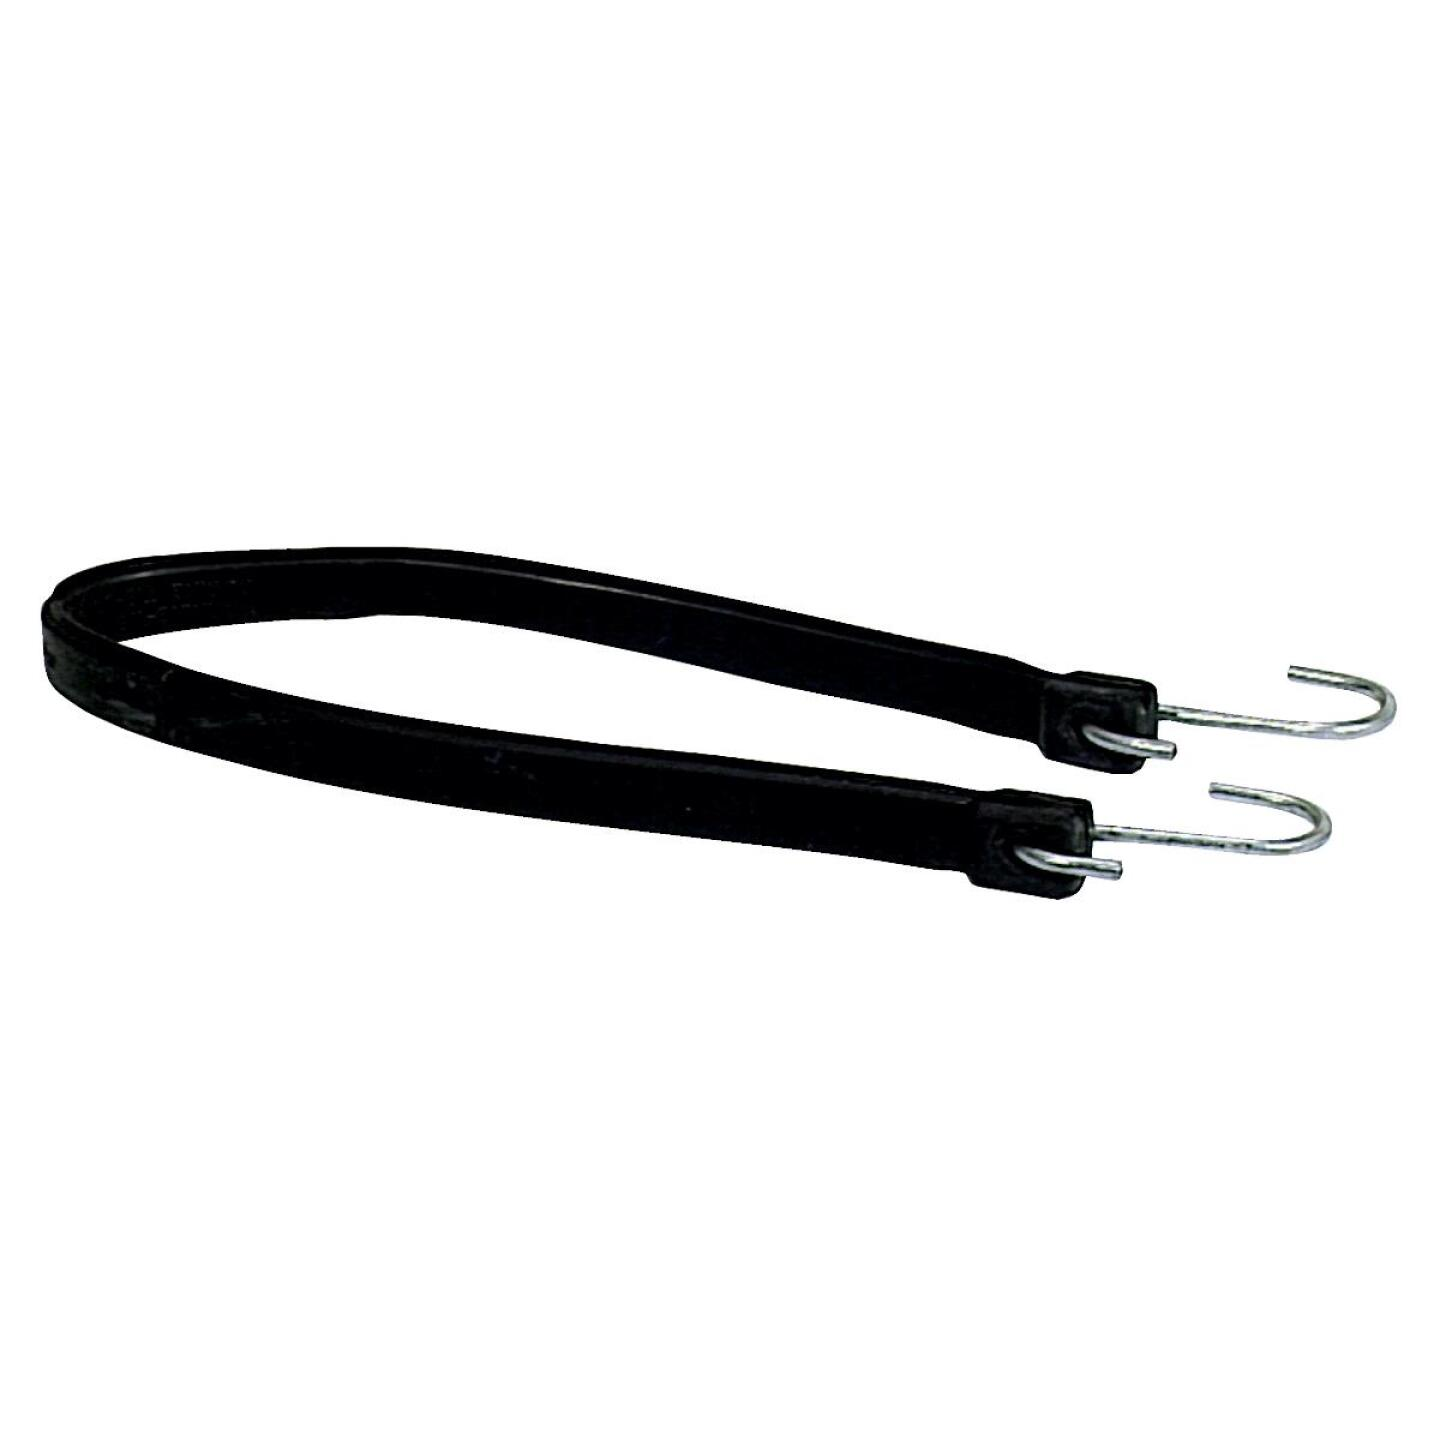 26 In. Hook-to-Hook Black Rubber Tarp Strap Image 1